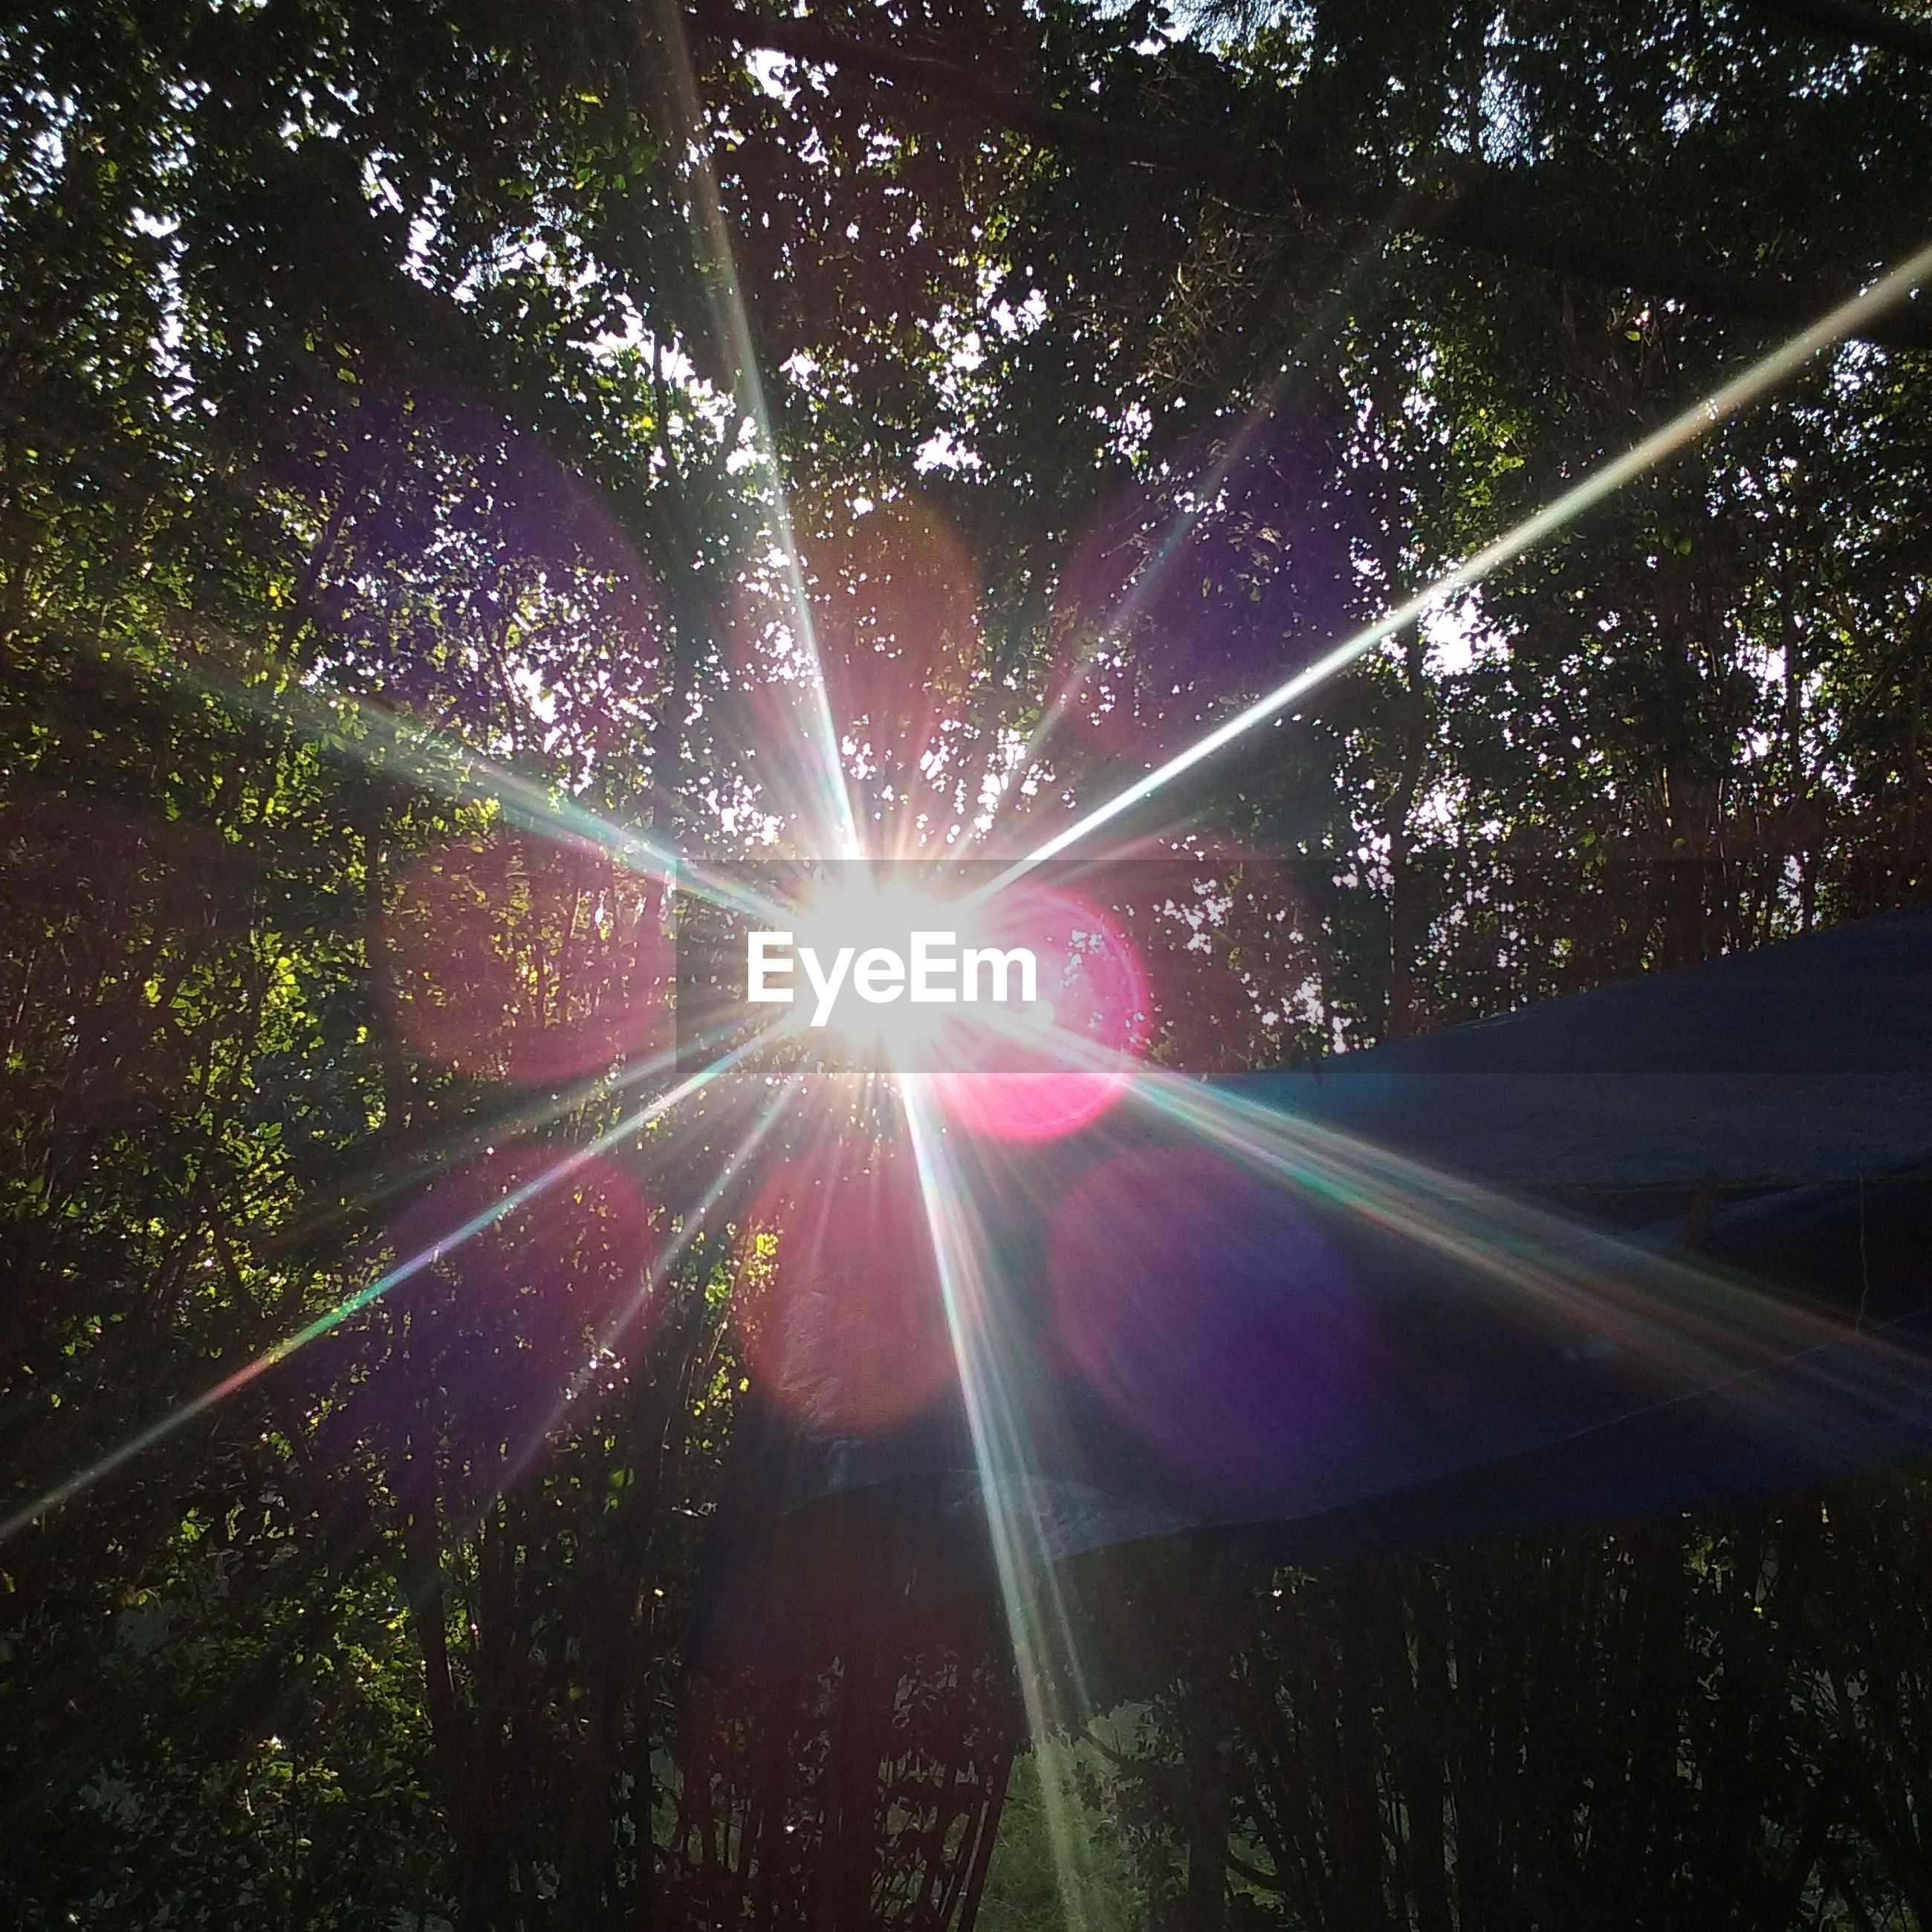 sunbeam, tree, lens flare, sunlight, sun, nature, growth, tranquility, beauty in nature, outdoors, low angle view, no people, day, forest